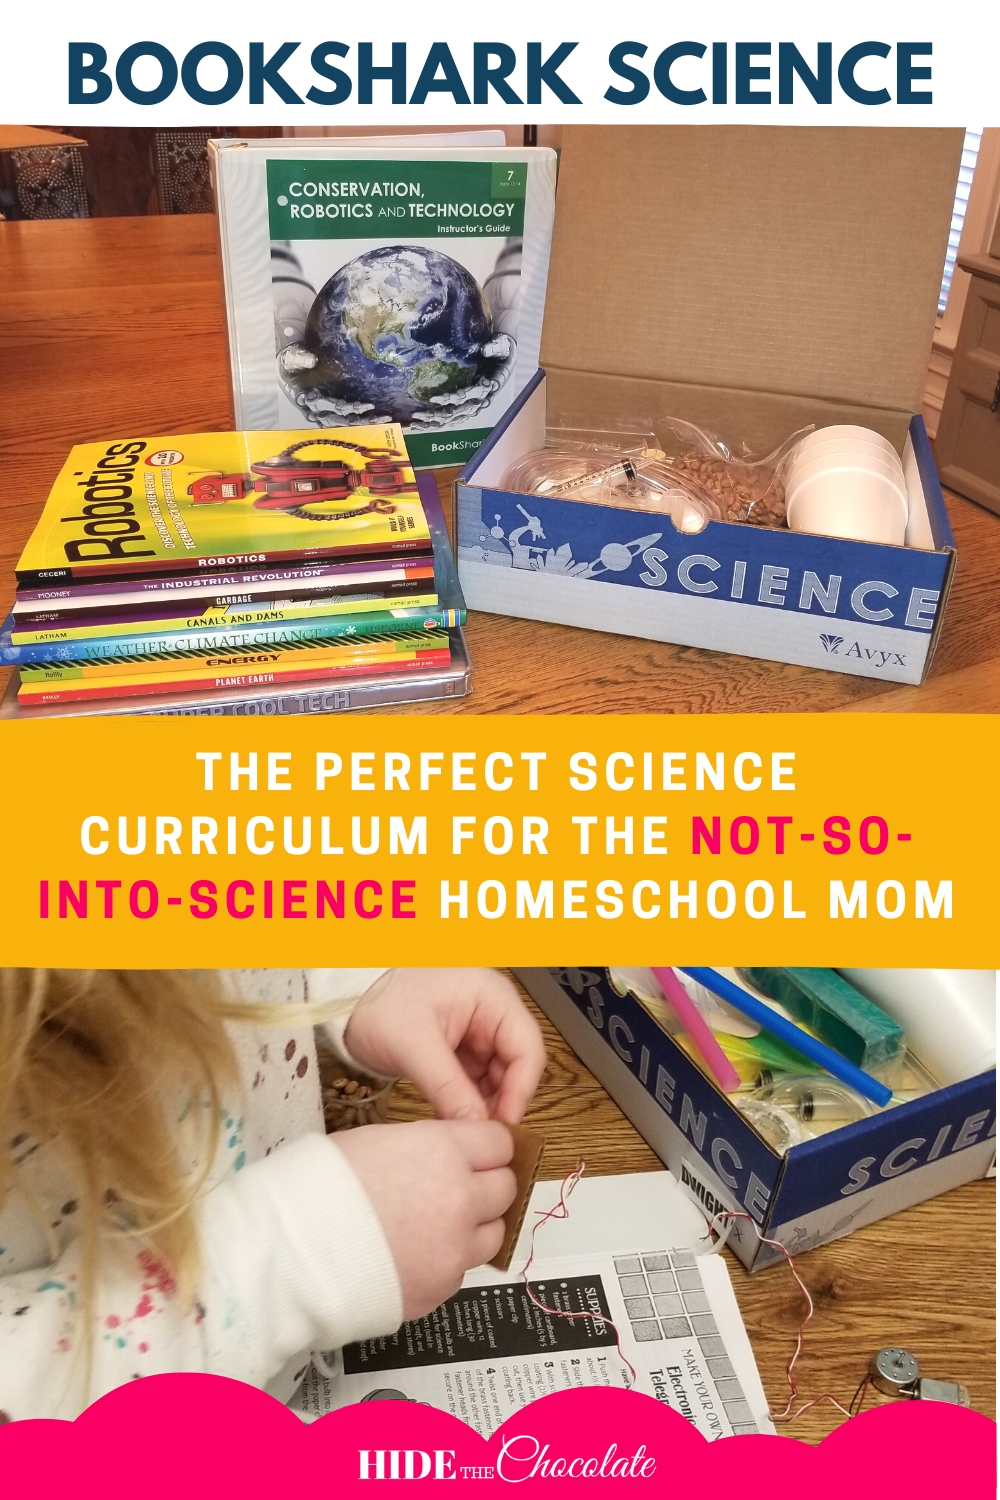 Rock Middle School Science Even If You\'re Not Sciencey With An All-In-One Science Curriculum